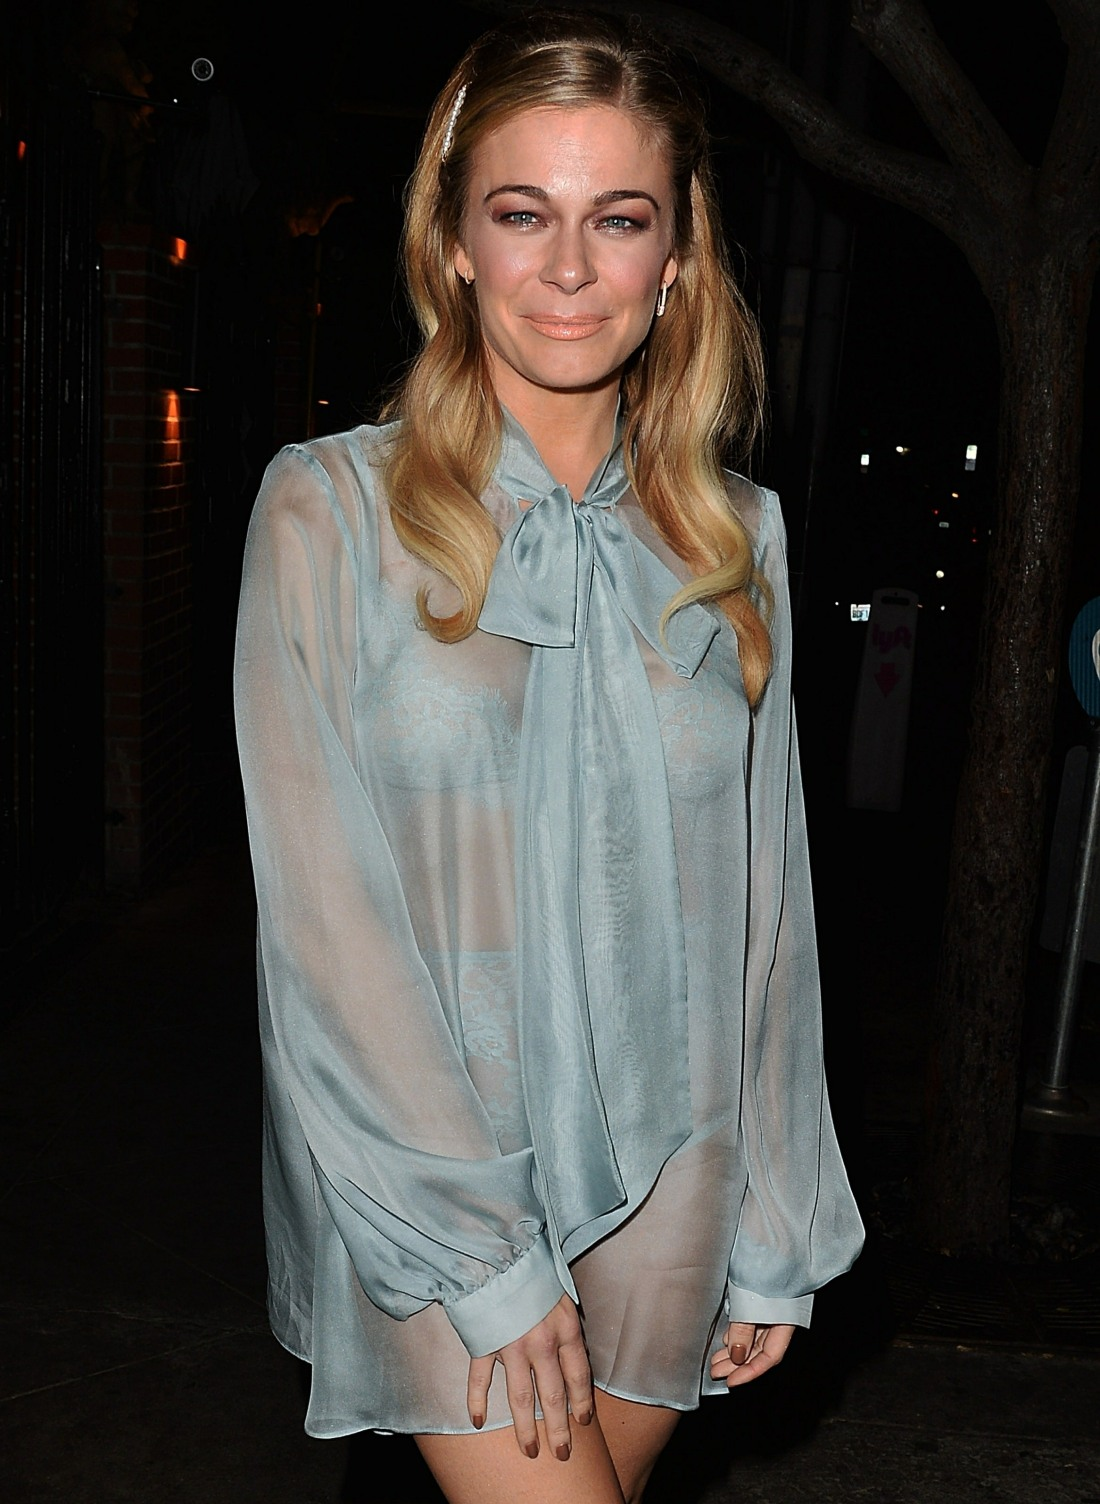 Dare to Bare! Leann Rimes sports a Completely See Through mesh outfit at The Abby